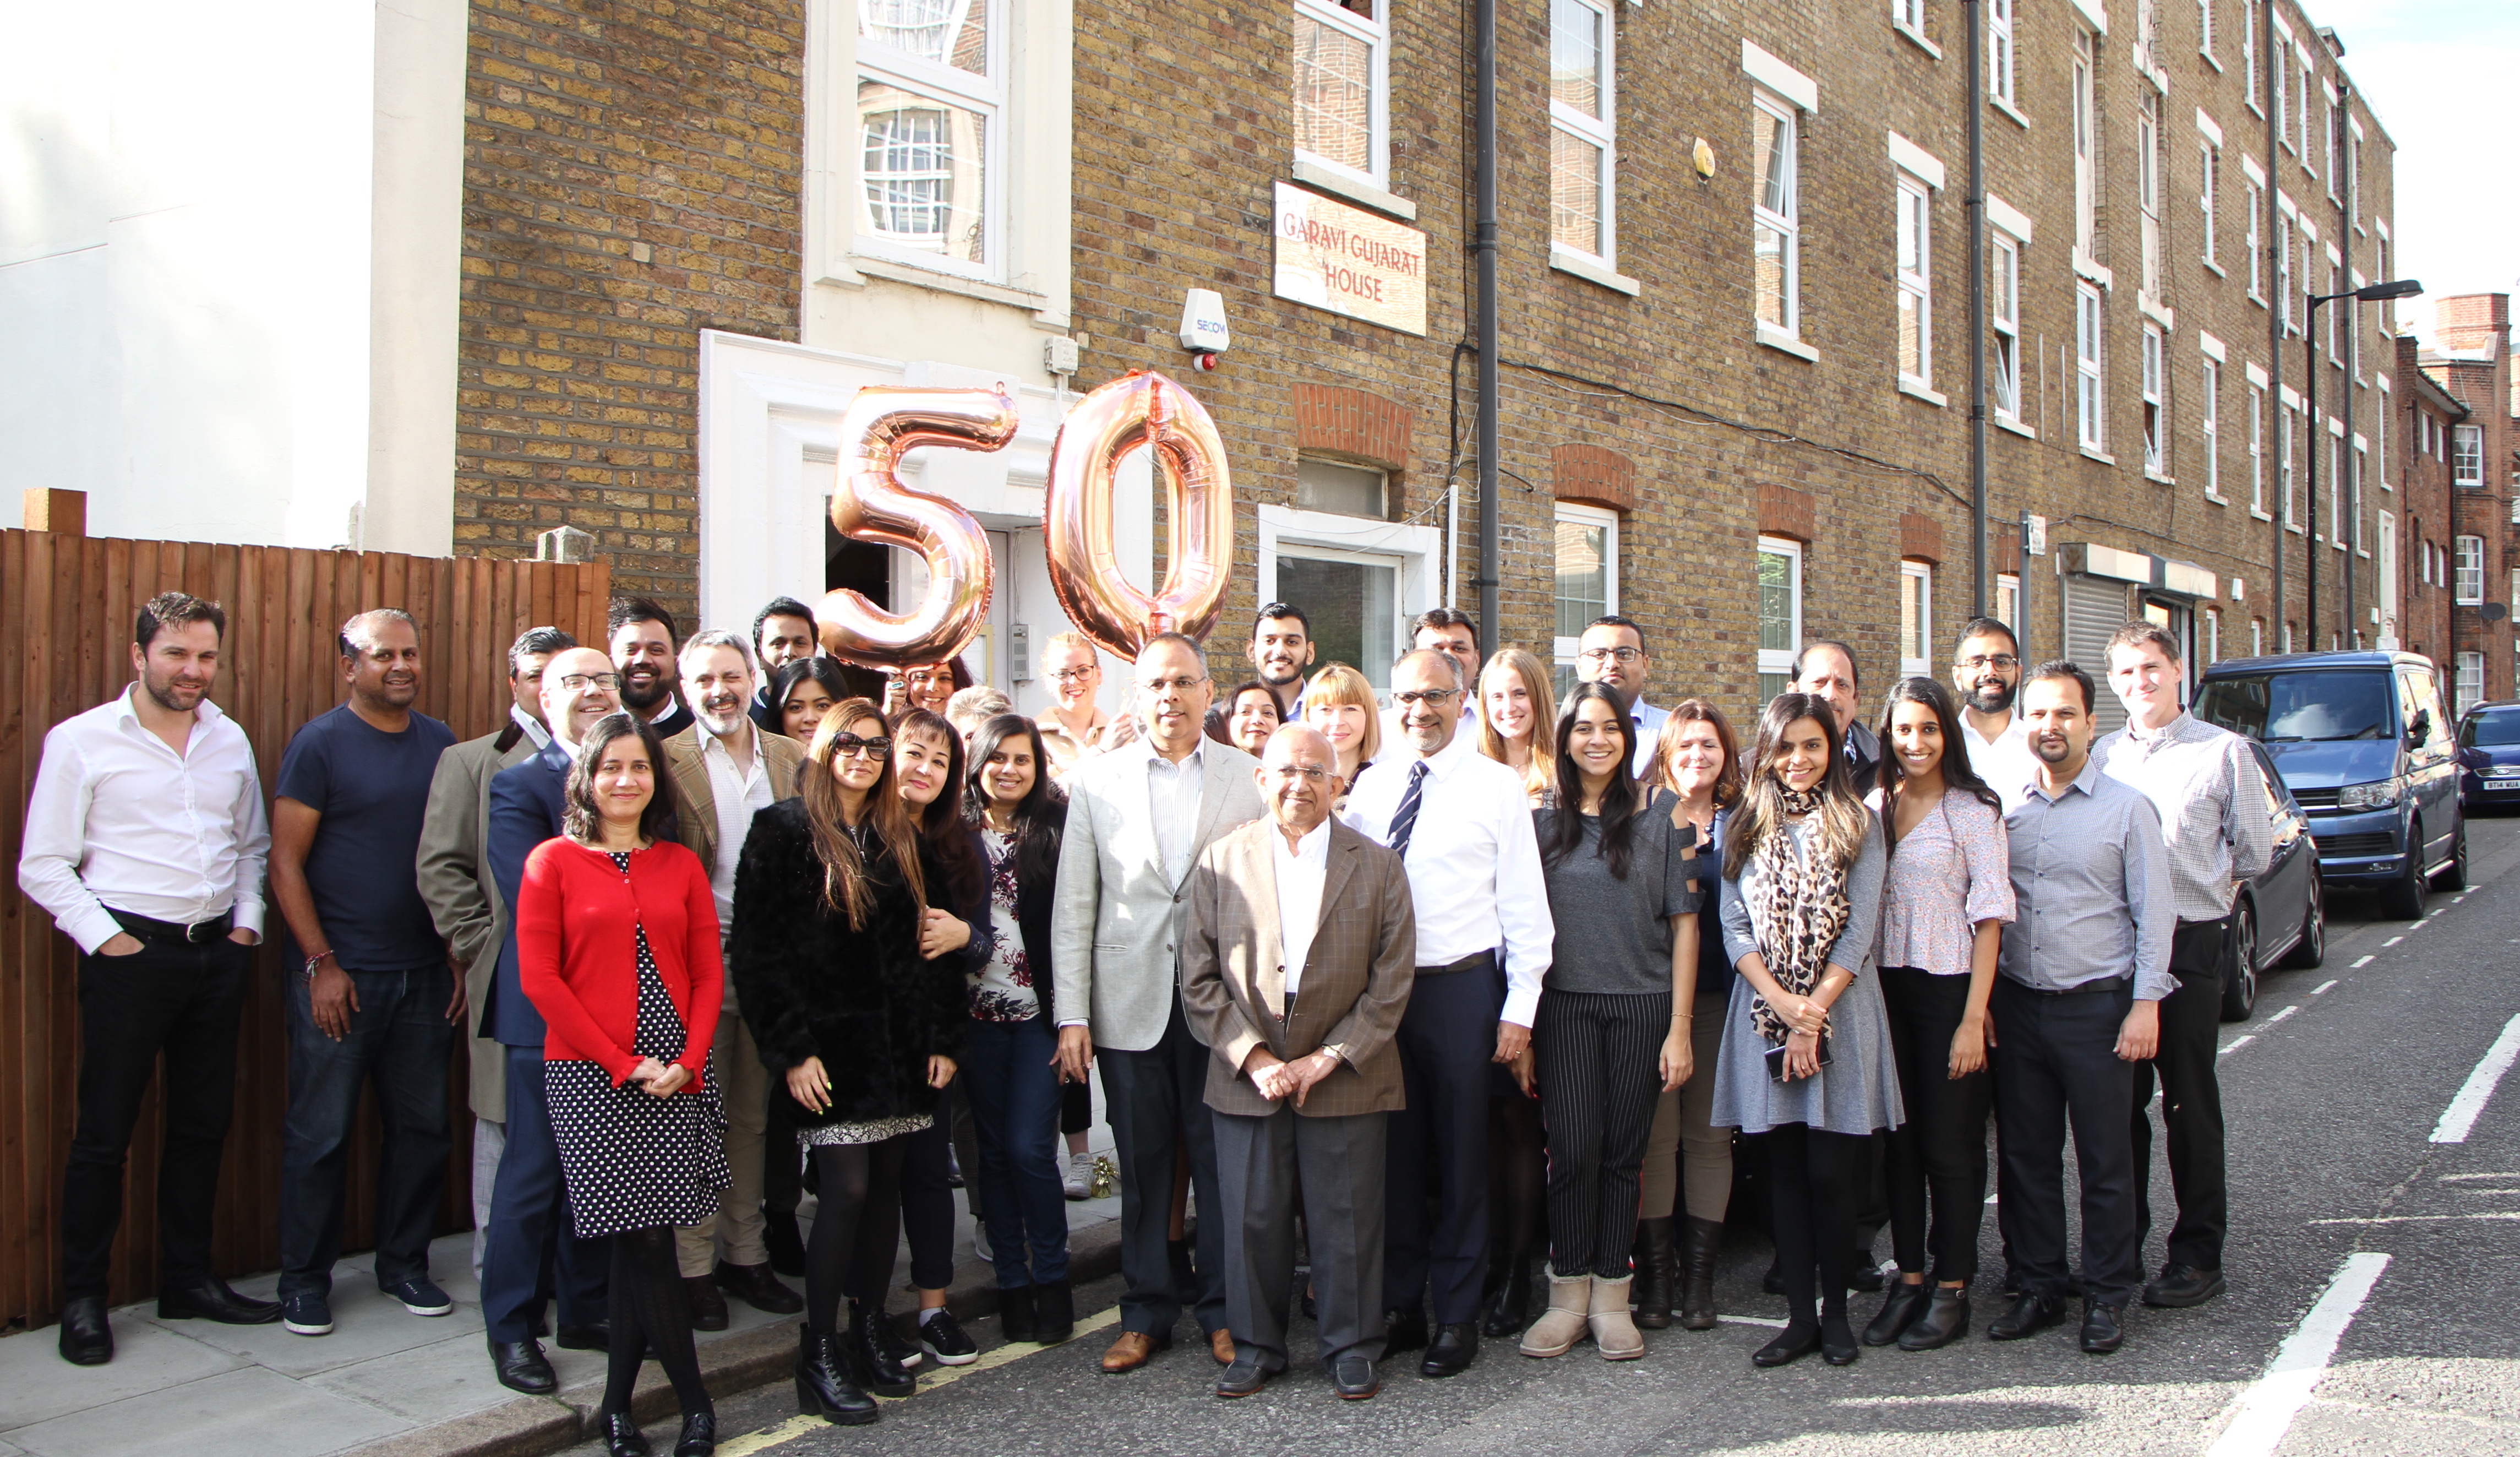 IMPARTING WISDOM: AMG staff with  Ramniklal Solanki (centre, in brown jacket)  and members of the Solanki family in front  of the company's London offices to mark  50 years since the launch of Garavi Gujarat